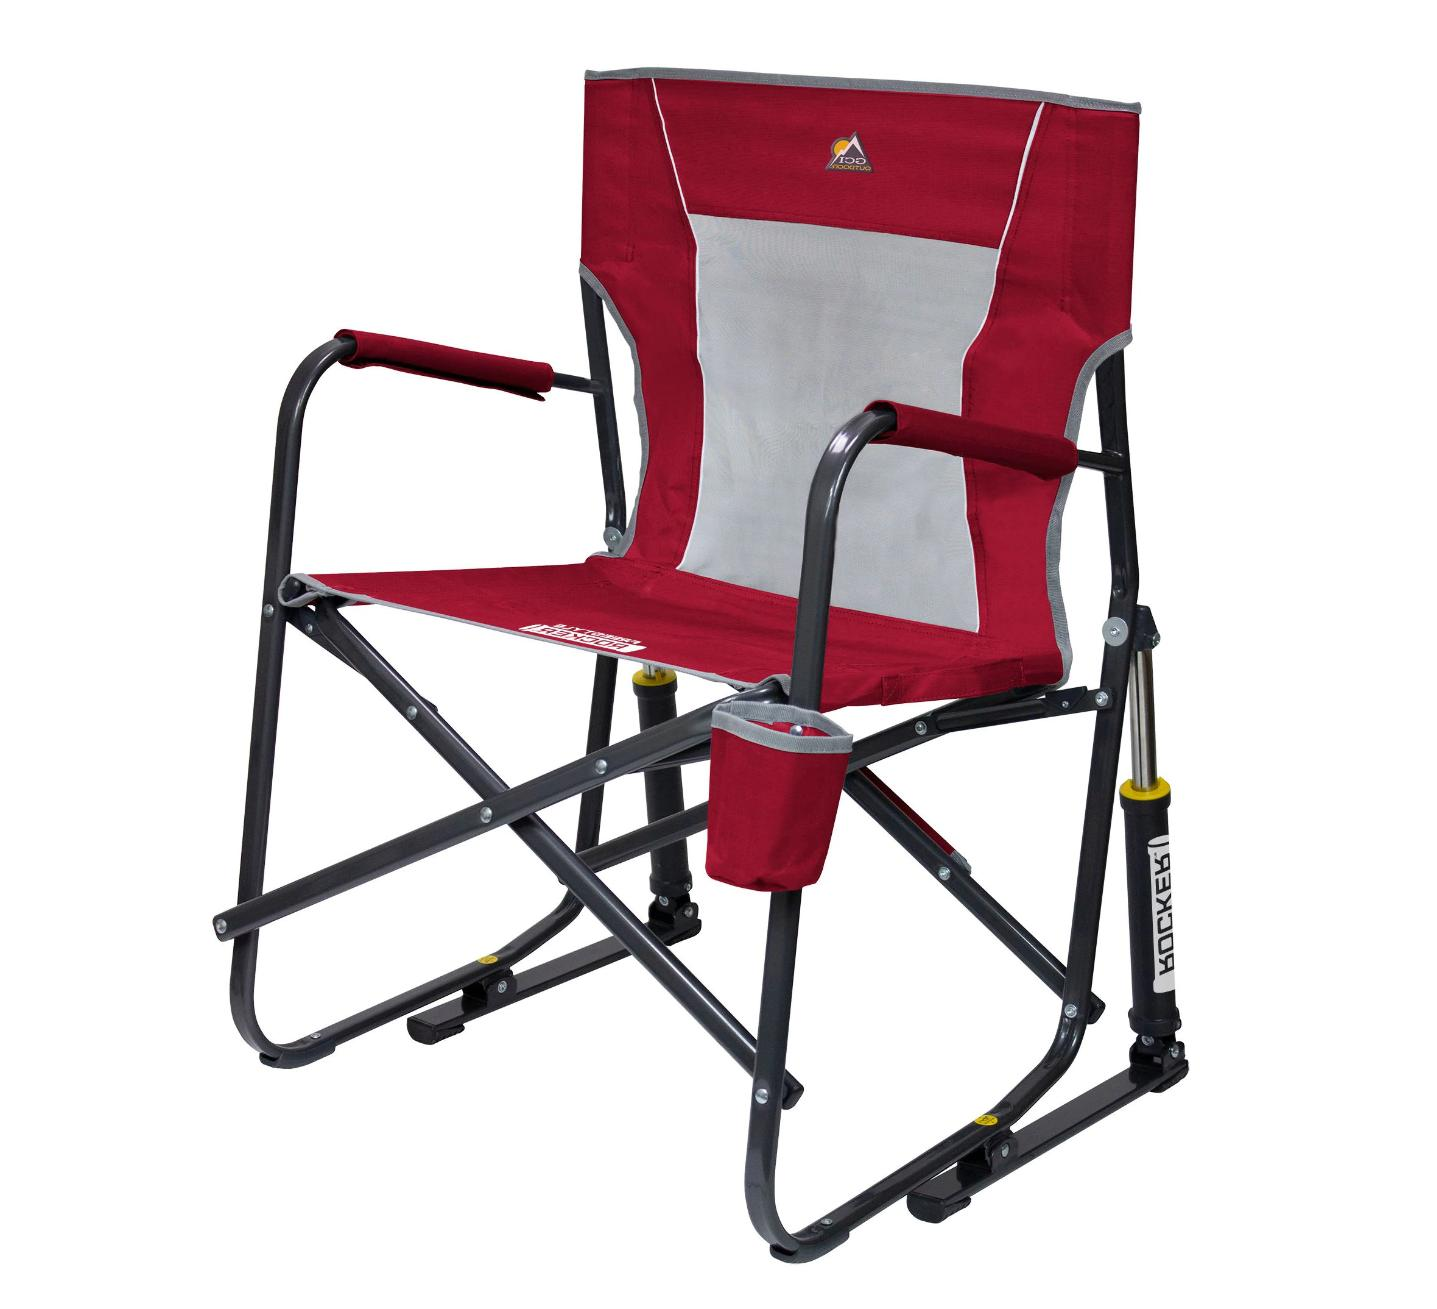 GCI Outdoor Freestyle Rocker Portable Folding Rocking Camping Lawn